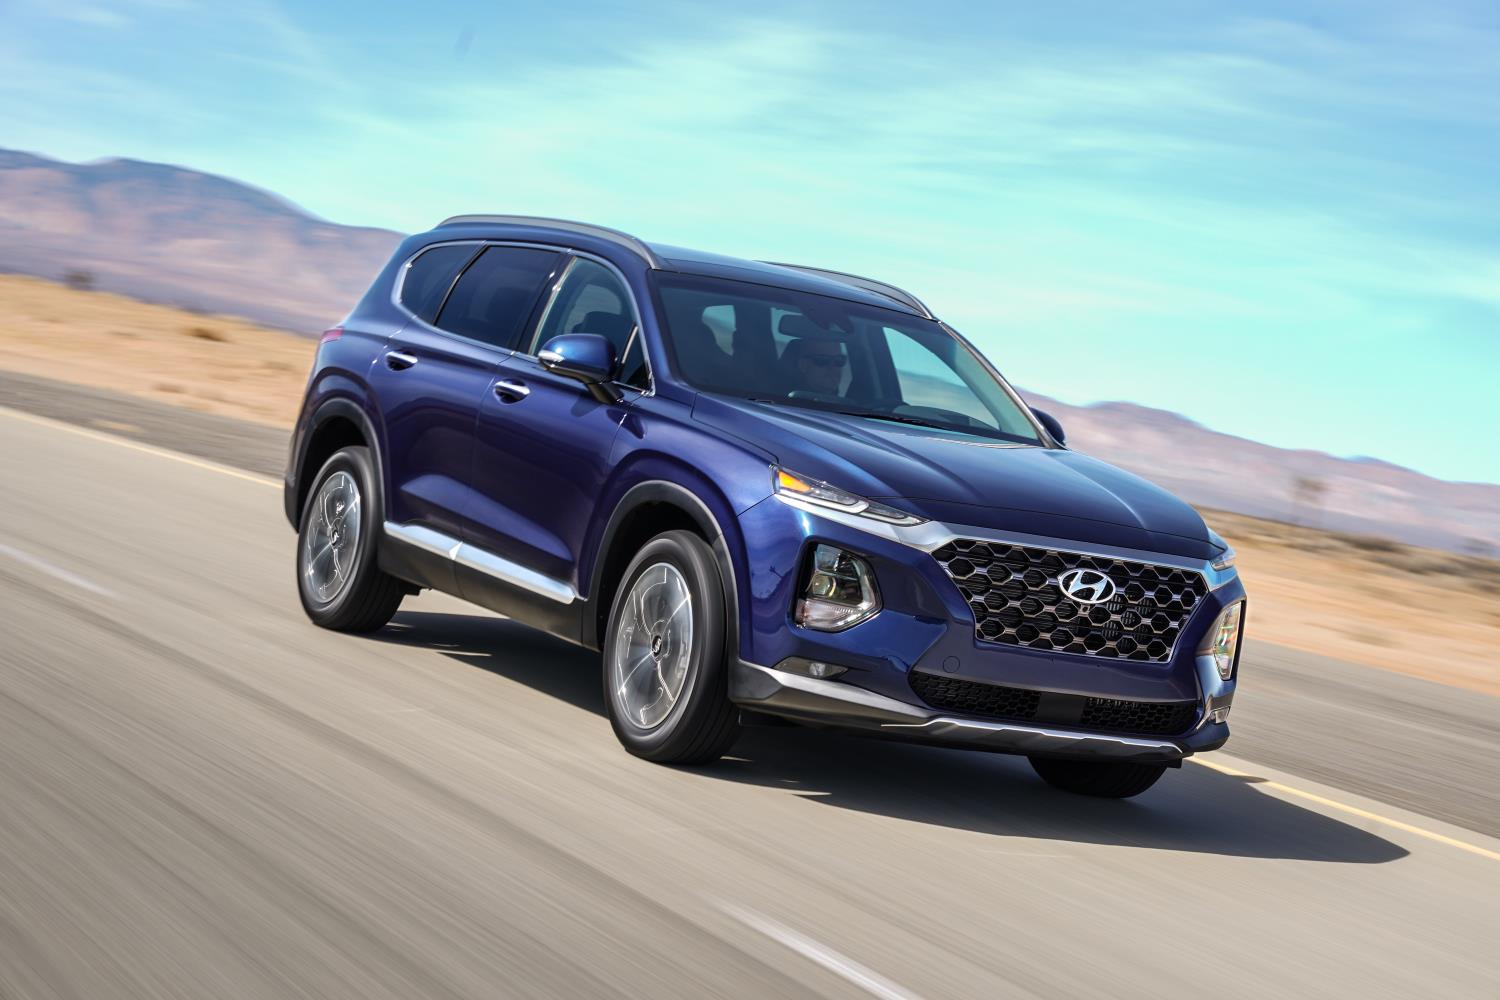 2019 hyundai santa fe crosses the ocean for nyias gets new trim names autoevolution. Black Bedroom Furniture Sets. Home Design Ideas